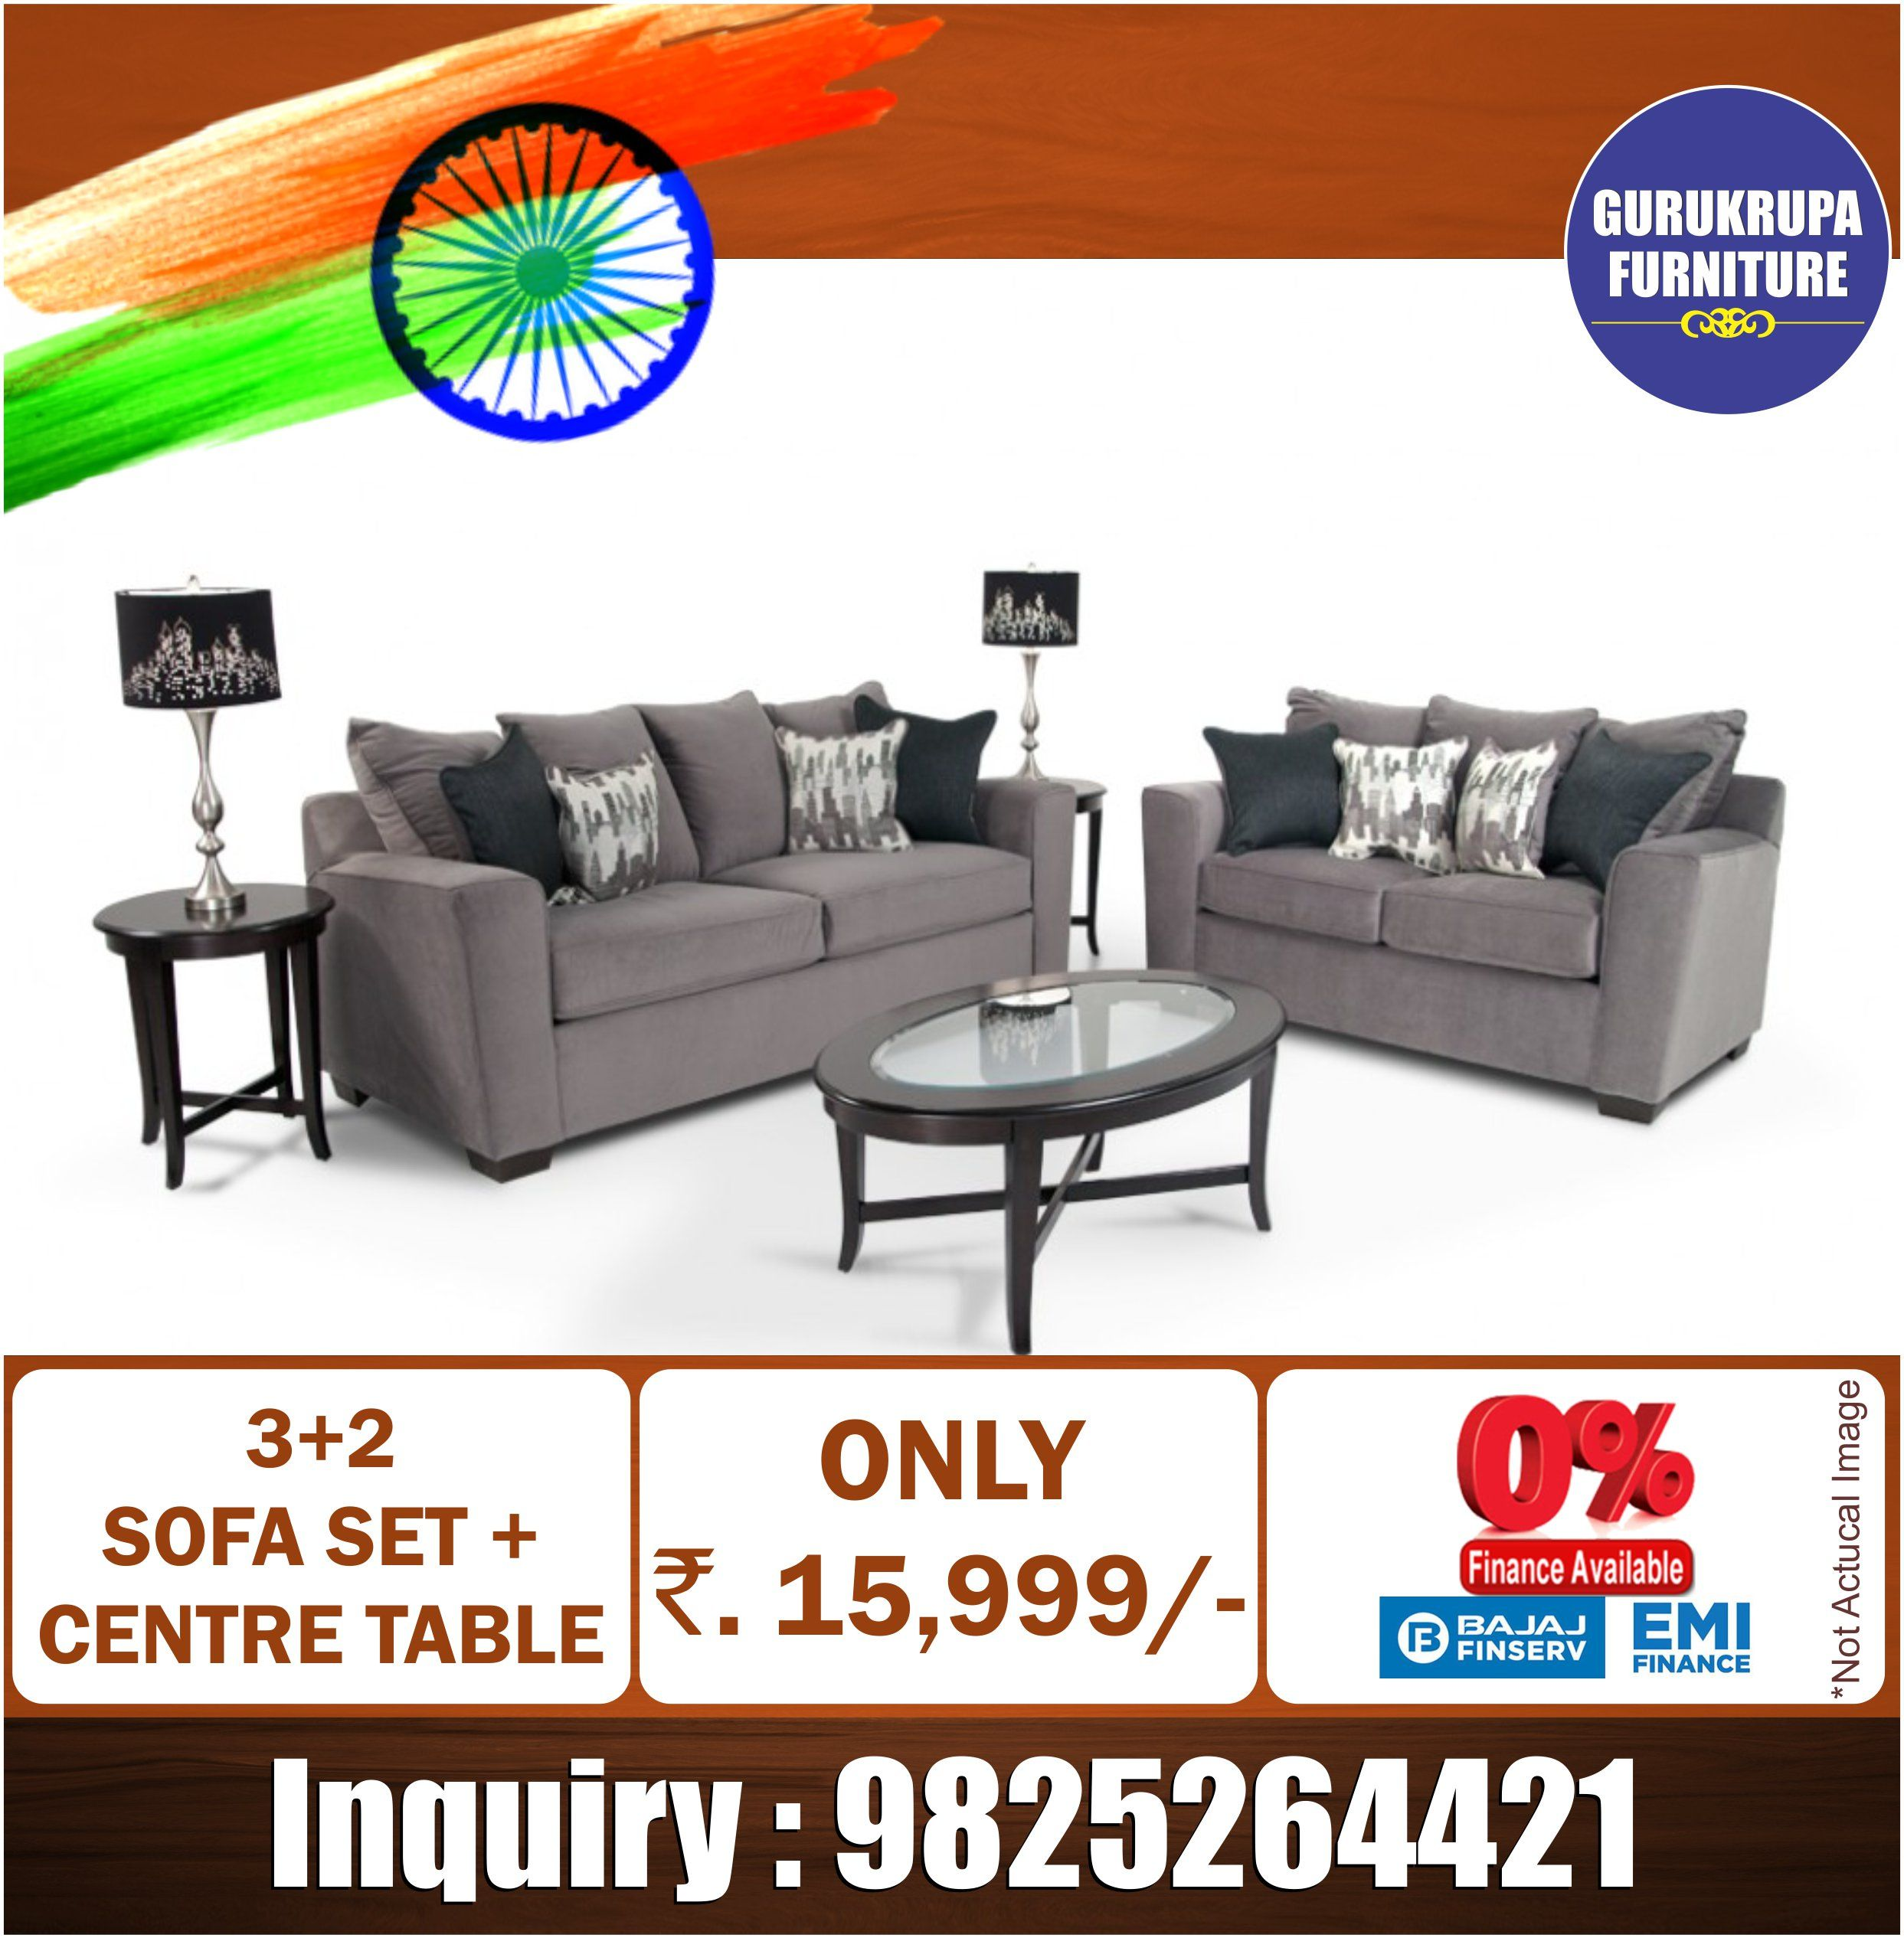 gurukrupa furniture ahmedabad one of the leading supplier of